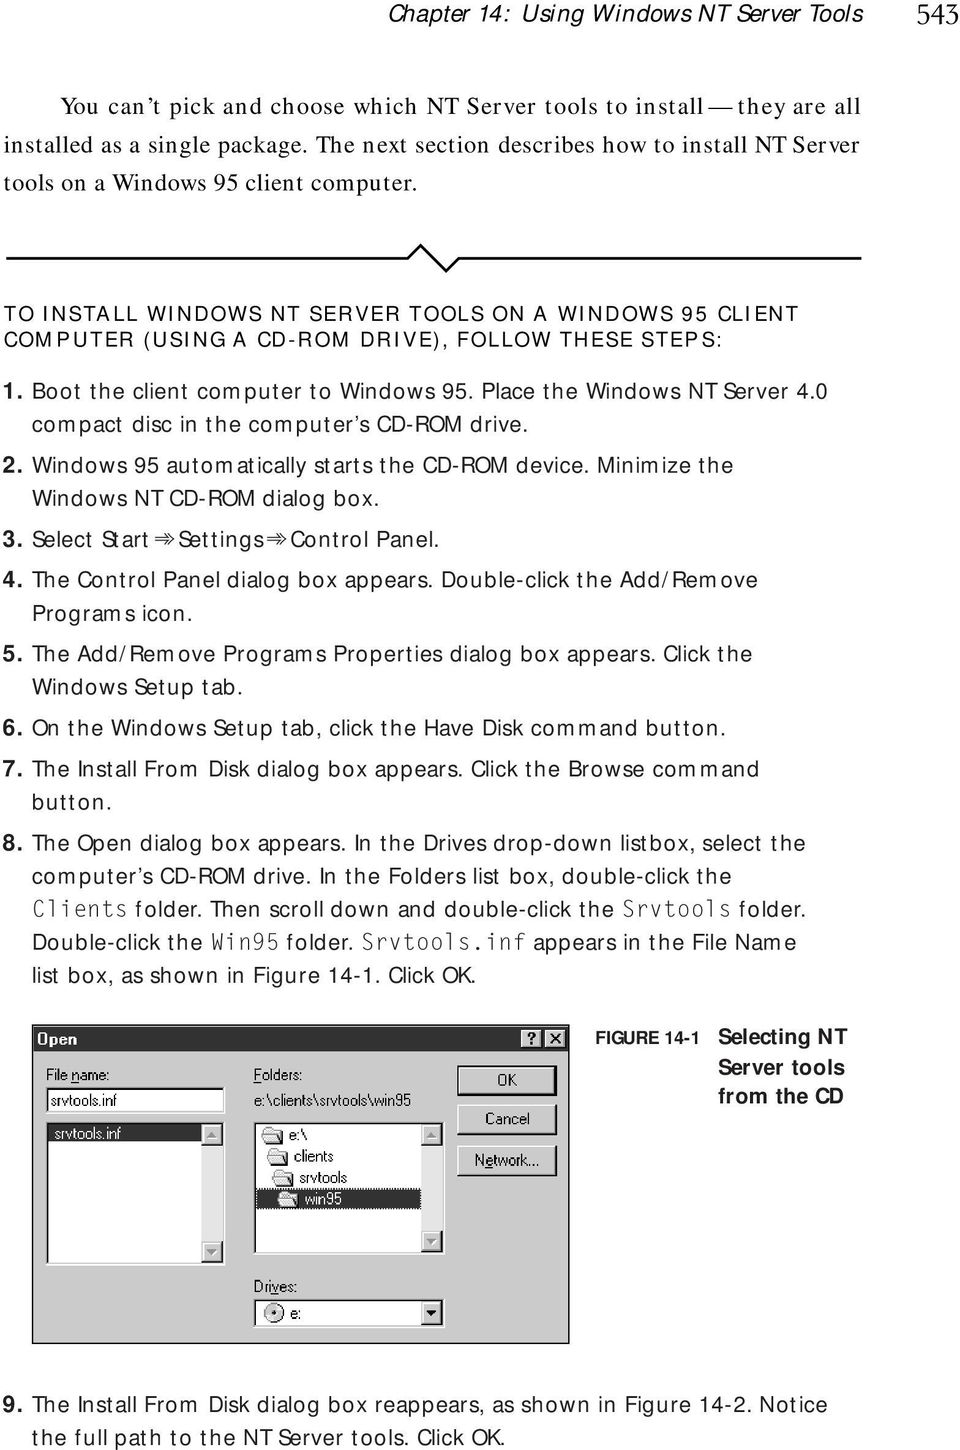 TO INSTALL WINDOWS NT SERVER TOOLS ON A WINDOWS 95 CLIENT COMPUTER (USING A CD-ROM DRIVE), FOLLOW THESE STEPS: 1. Boot the client computer to Windows 95. Place the Windows NT Server 4.